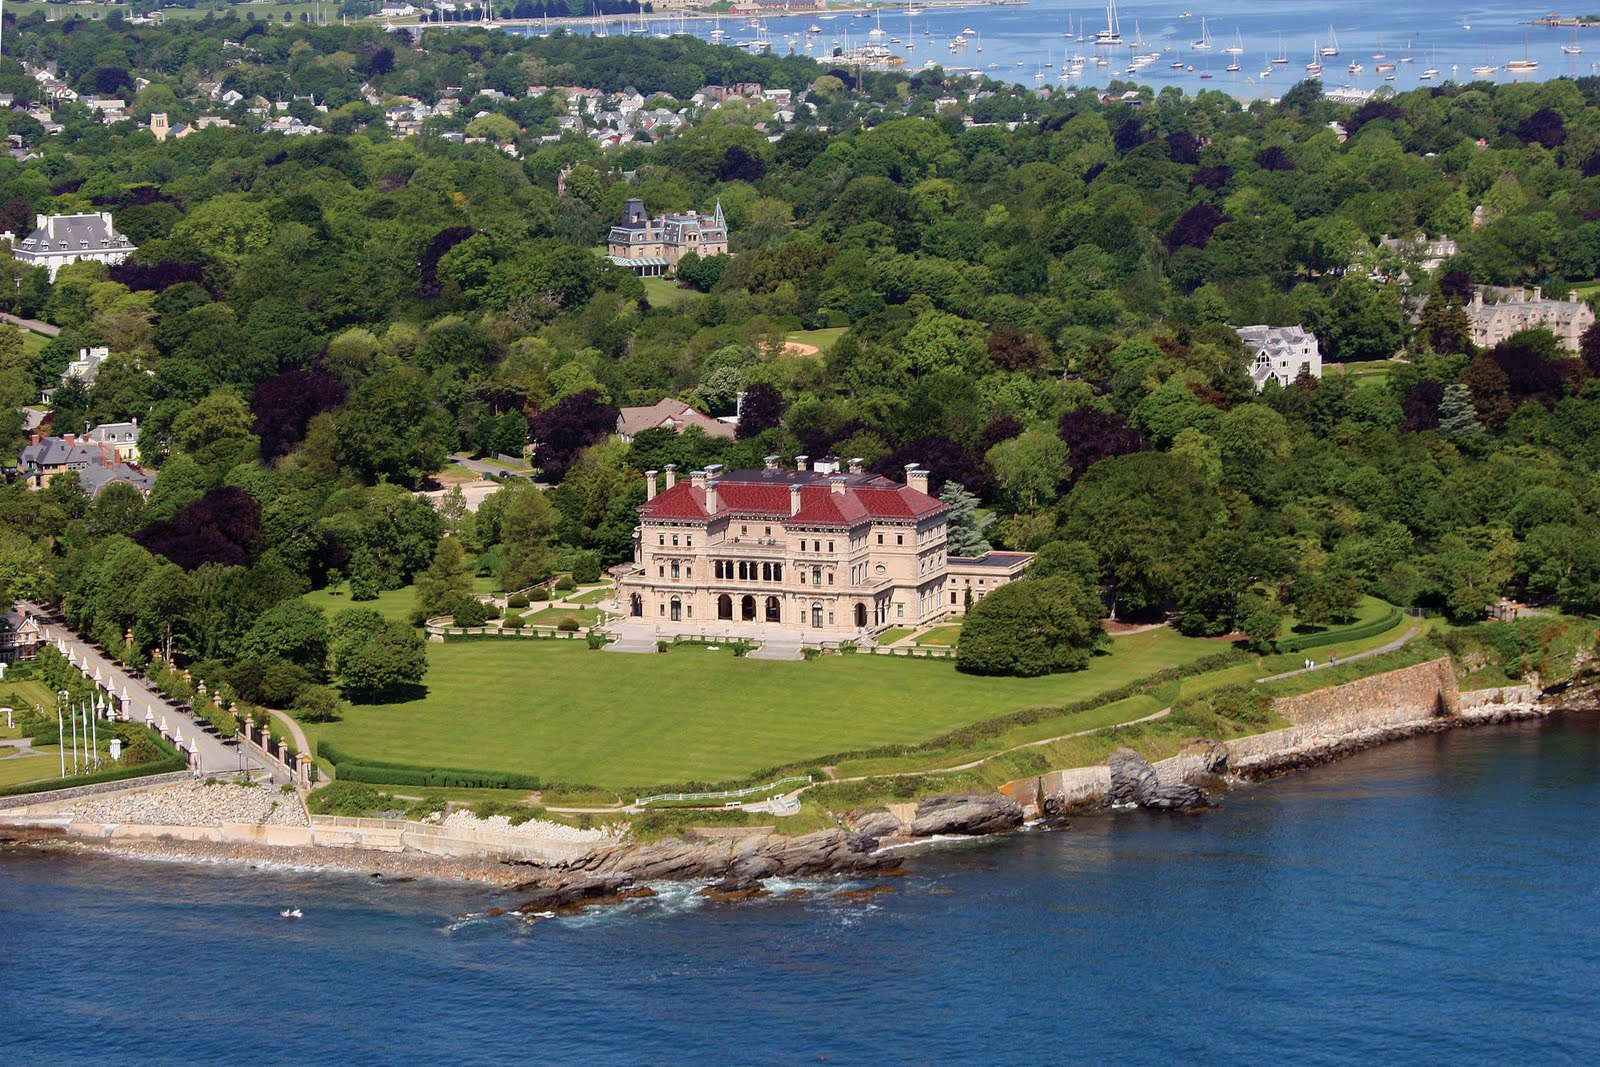 Footnotes: Novel Inspirations from History: The Breakers